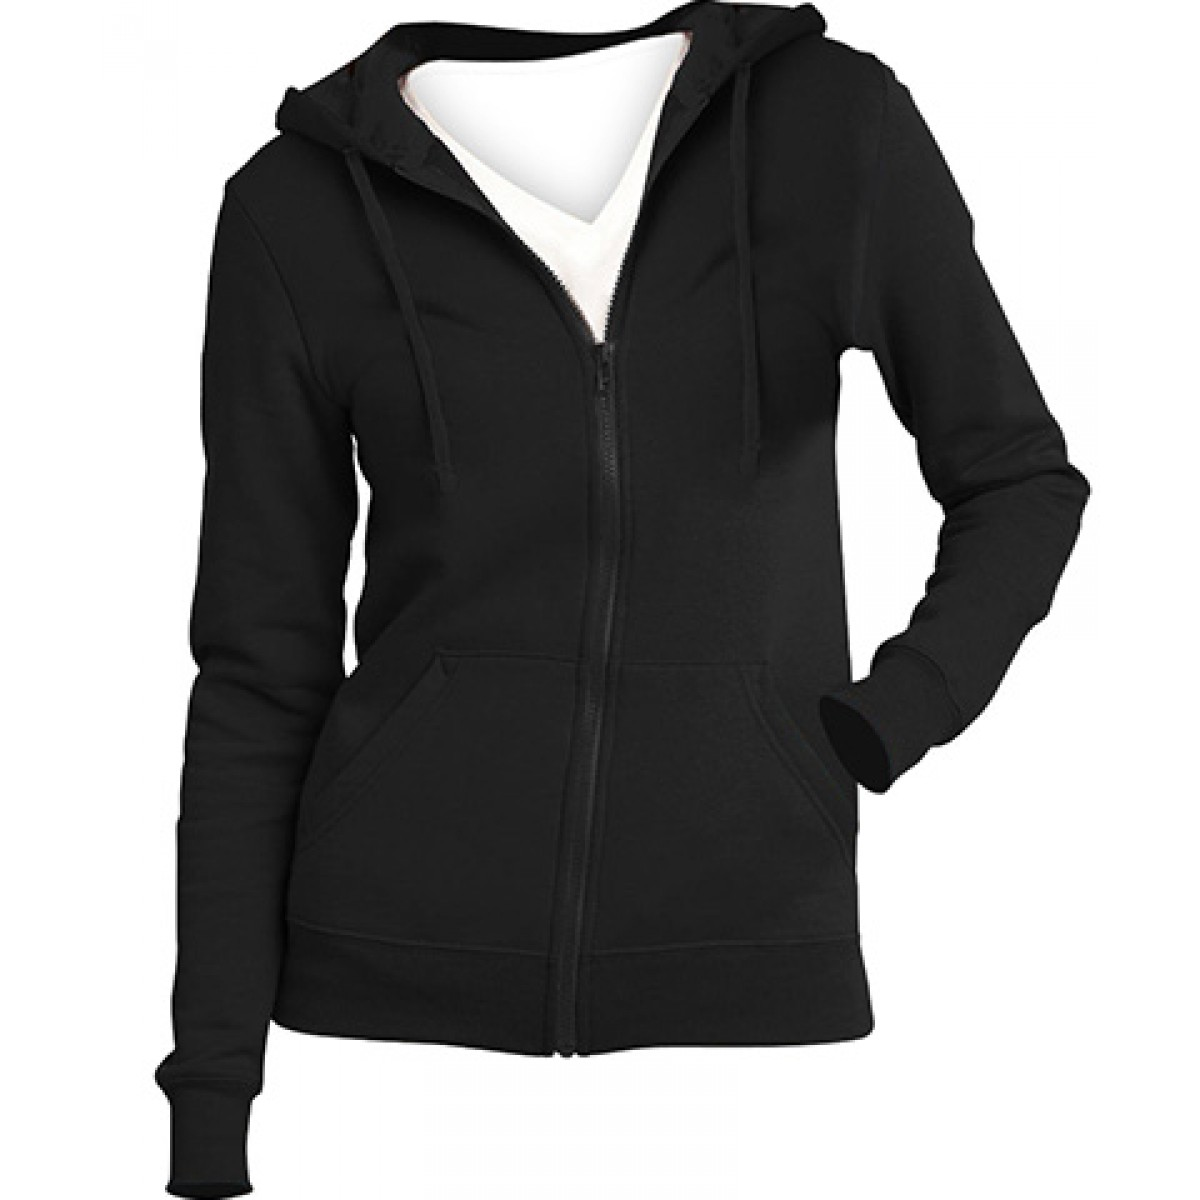 Juniors Full-Zip Hoodie-Black-2XL